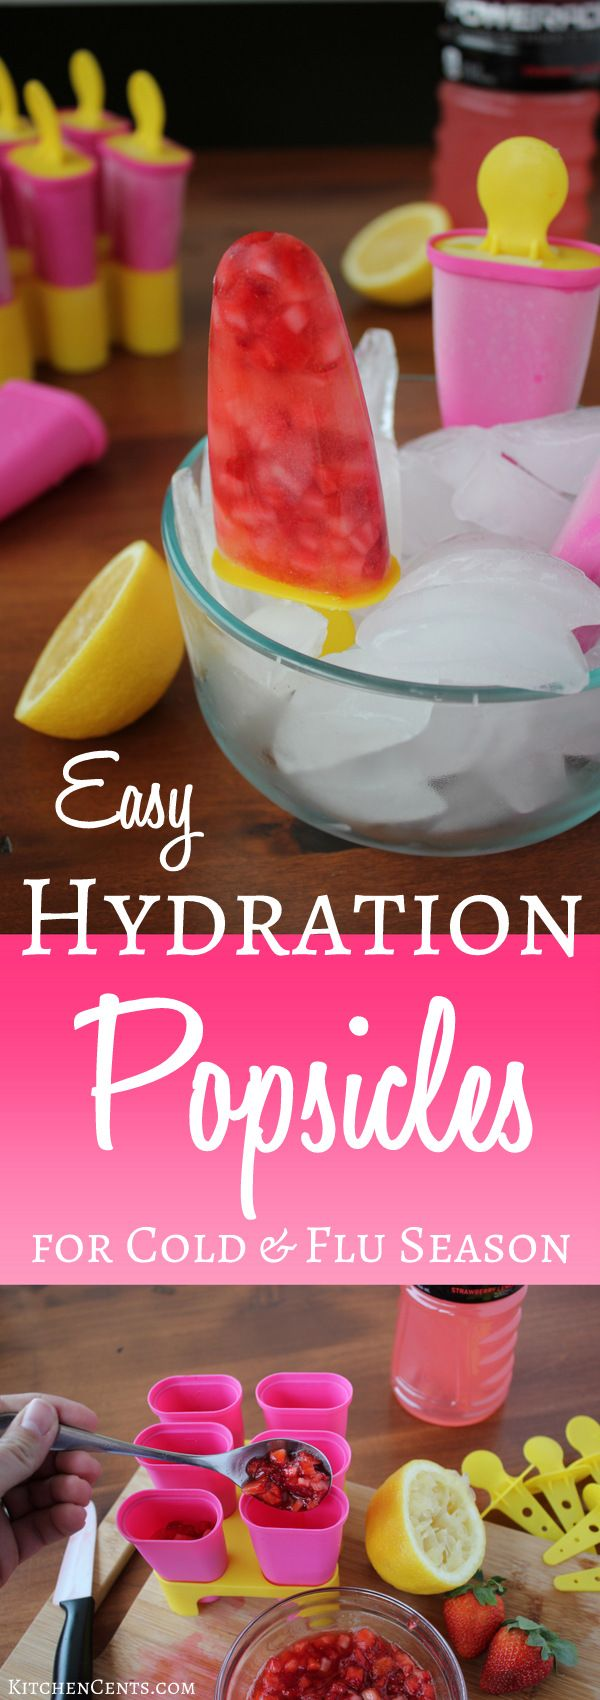 Easy Hydration Popsicles for Cold & Flu Season | KitchenCents.com Made with fresh fruit, raw honey, and topped off with hydrating liquid, these Hydration Popsicles are a great way to help your kids stay hydrated through the cold and flu season.